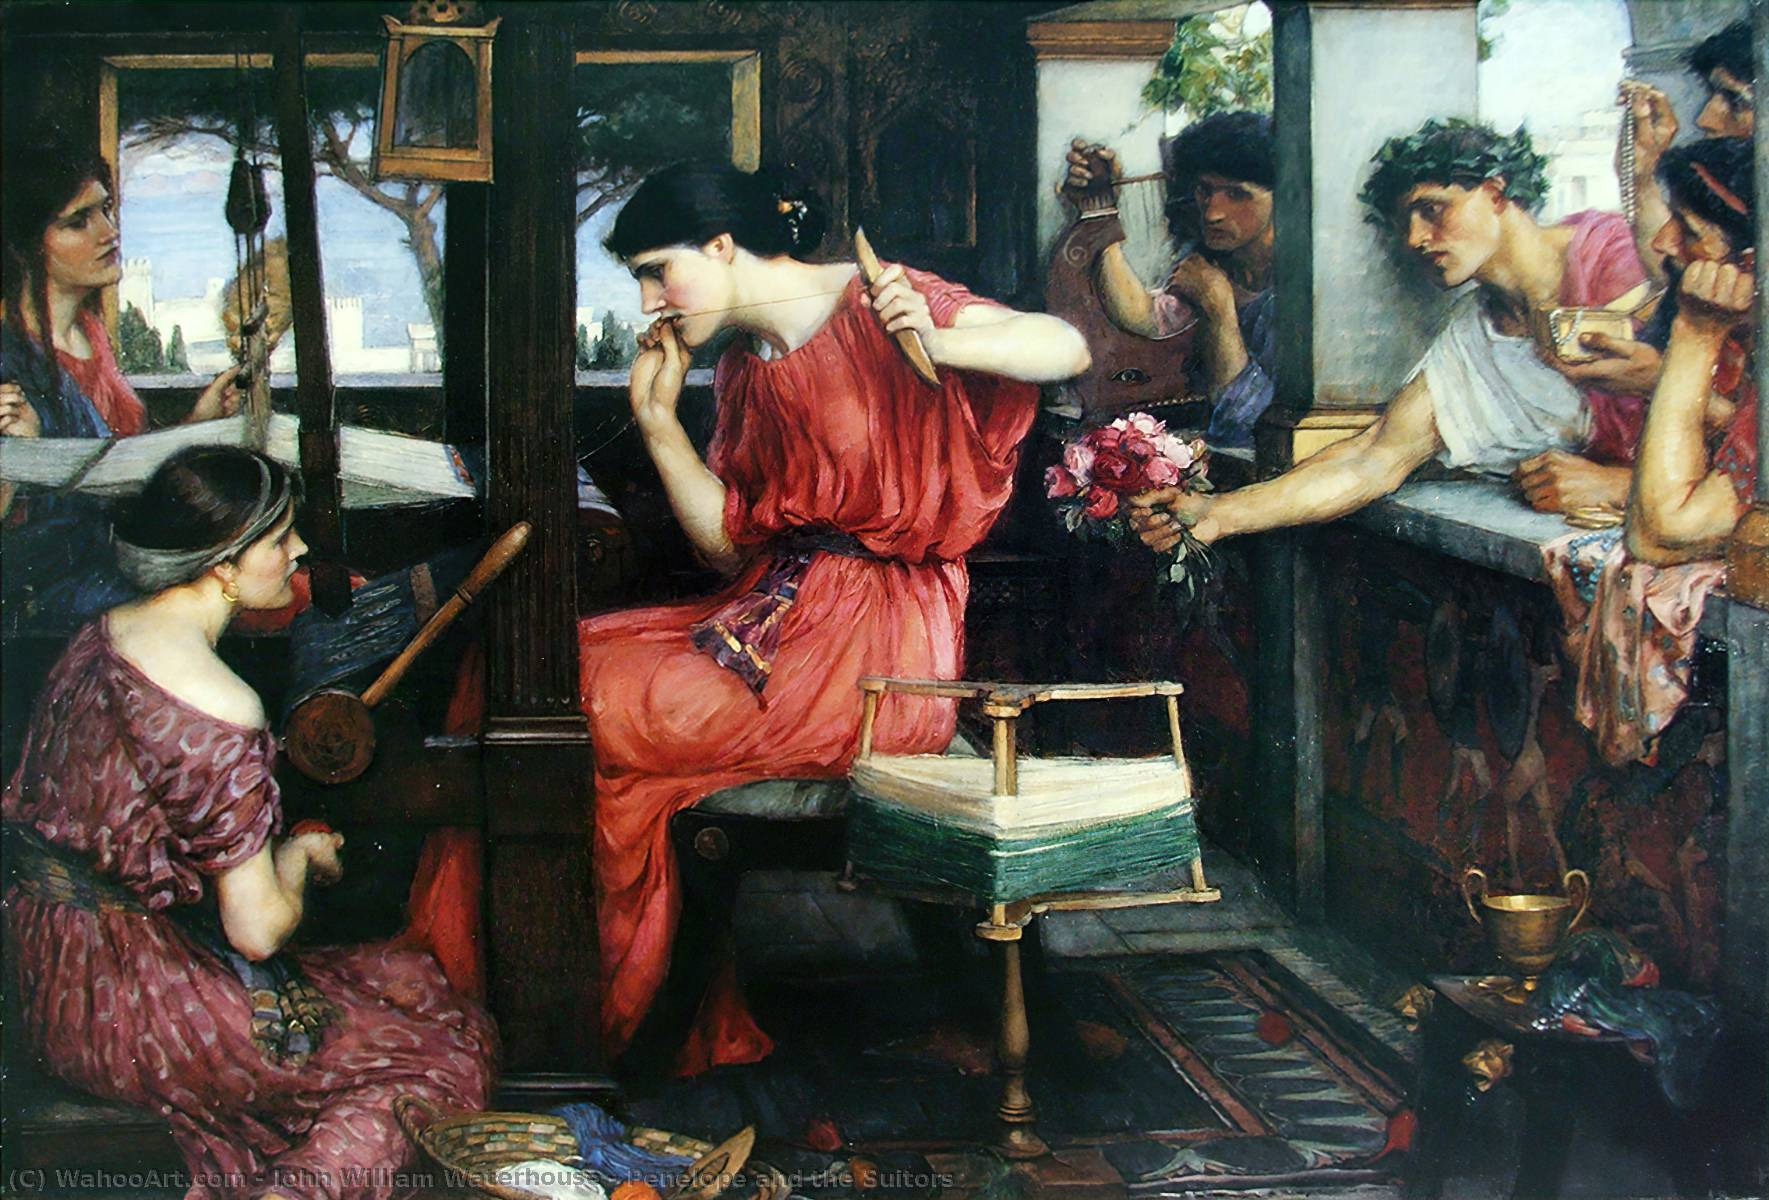 Order Art Reproductions | Penelope and the Suitors by John William Waterhouse | Most-Famous-Paintings.com